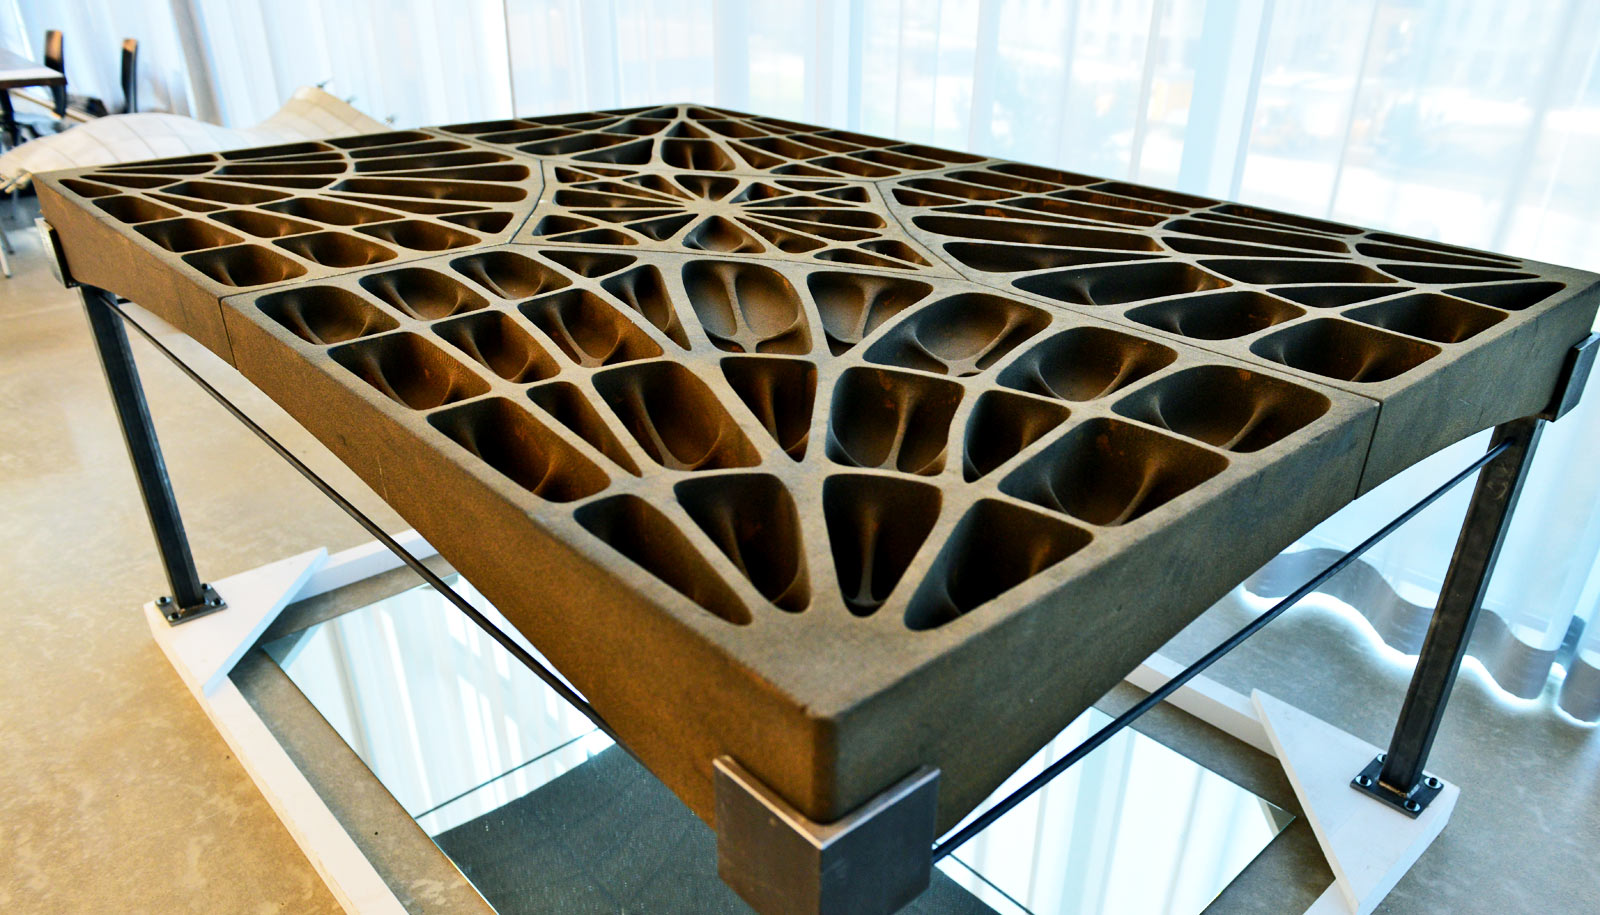 Gothic cathedrals inspire very thin concrete floors